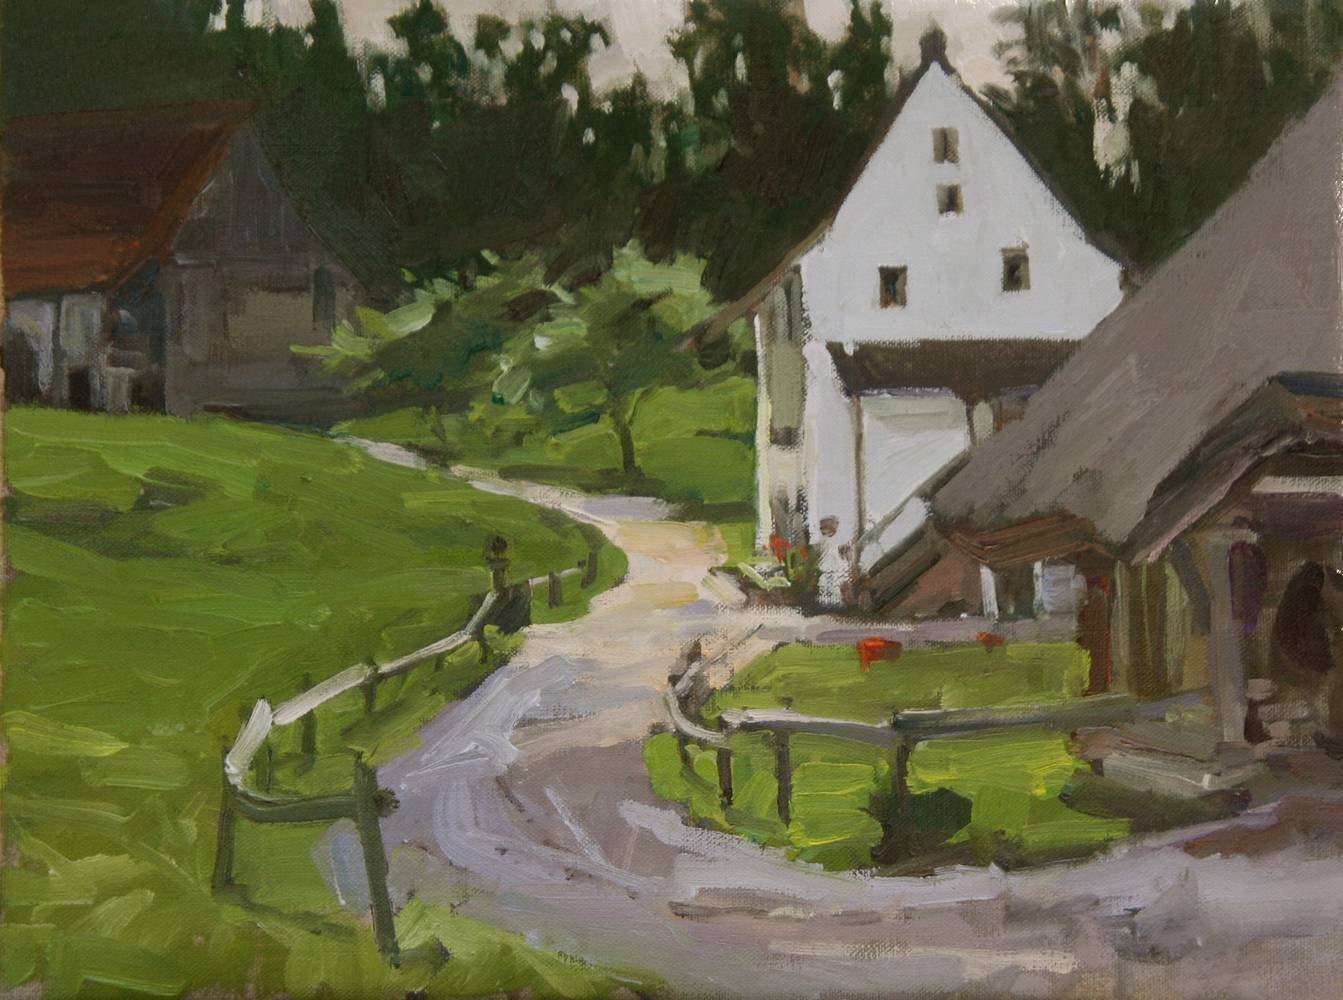 Painting Sur un chemise Suisse - On a Swiss Path by Susette Gertsch